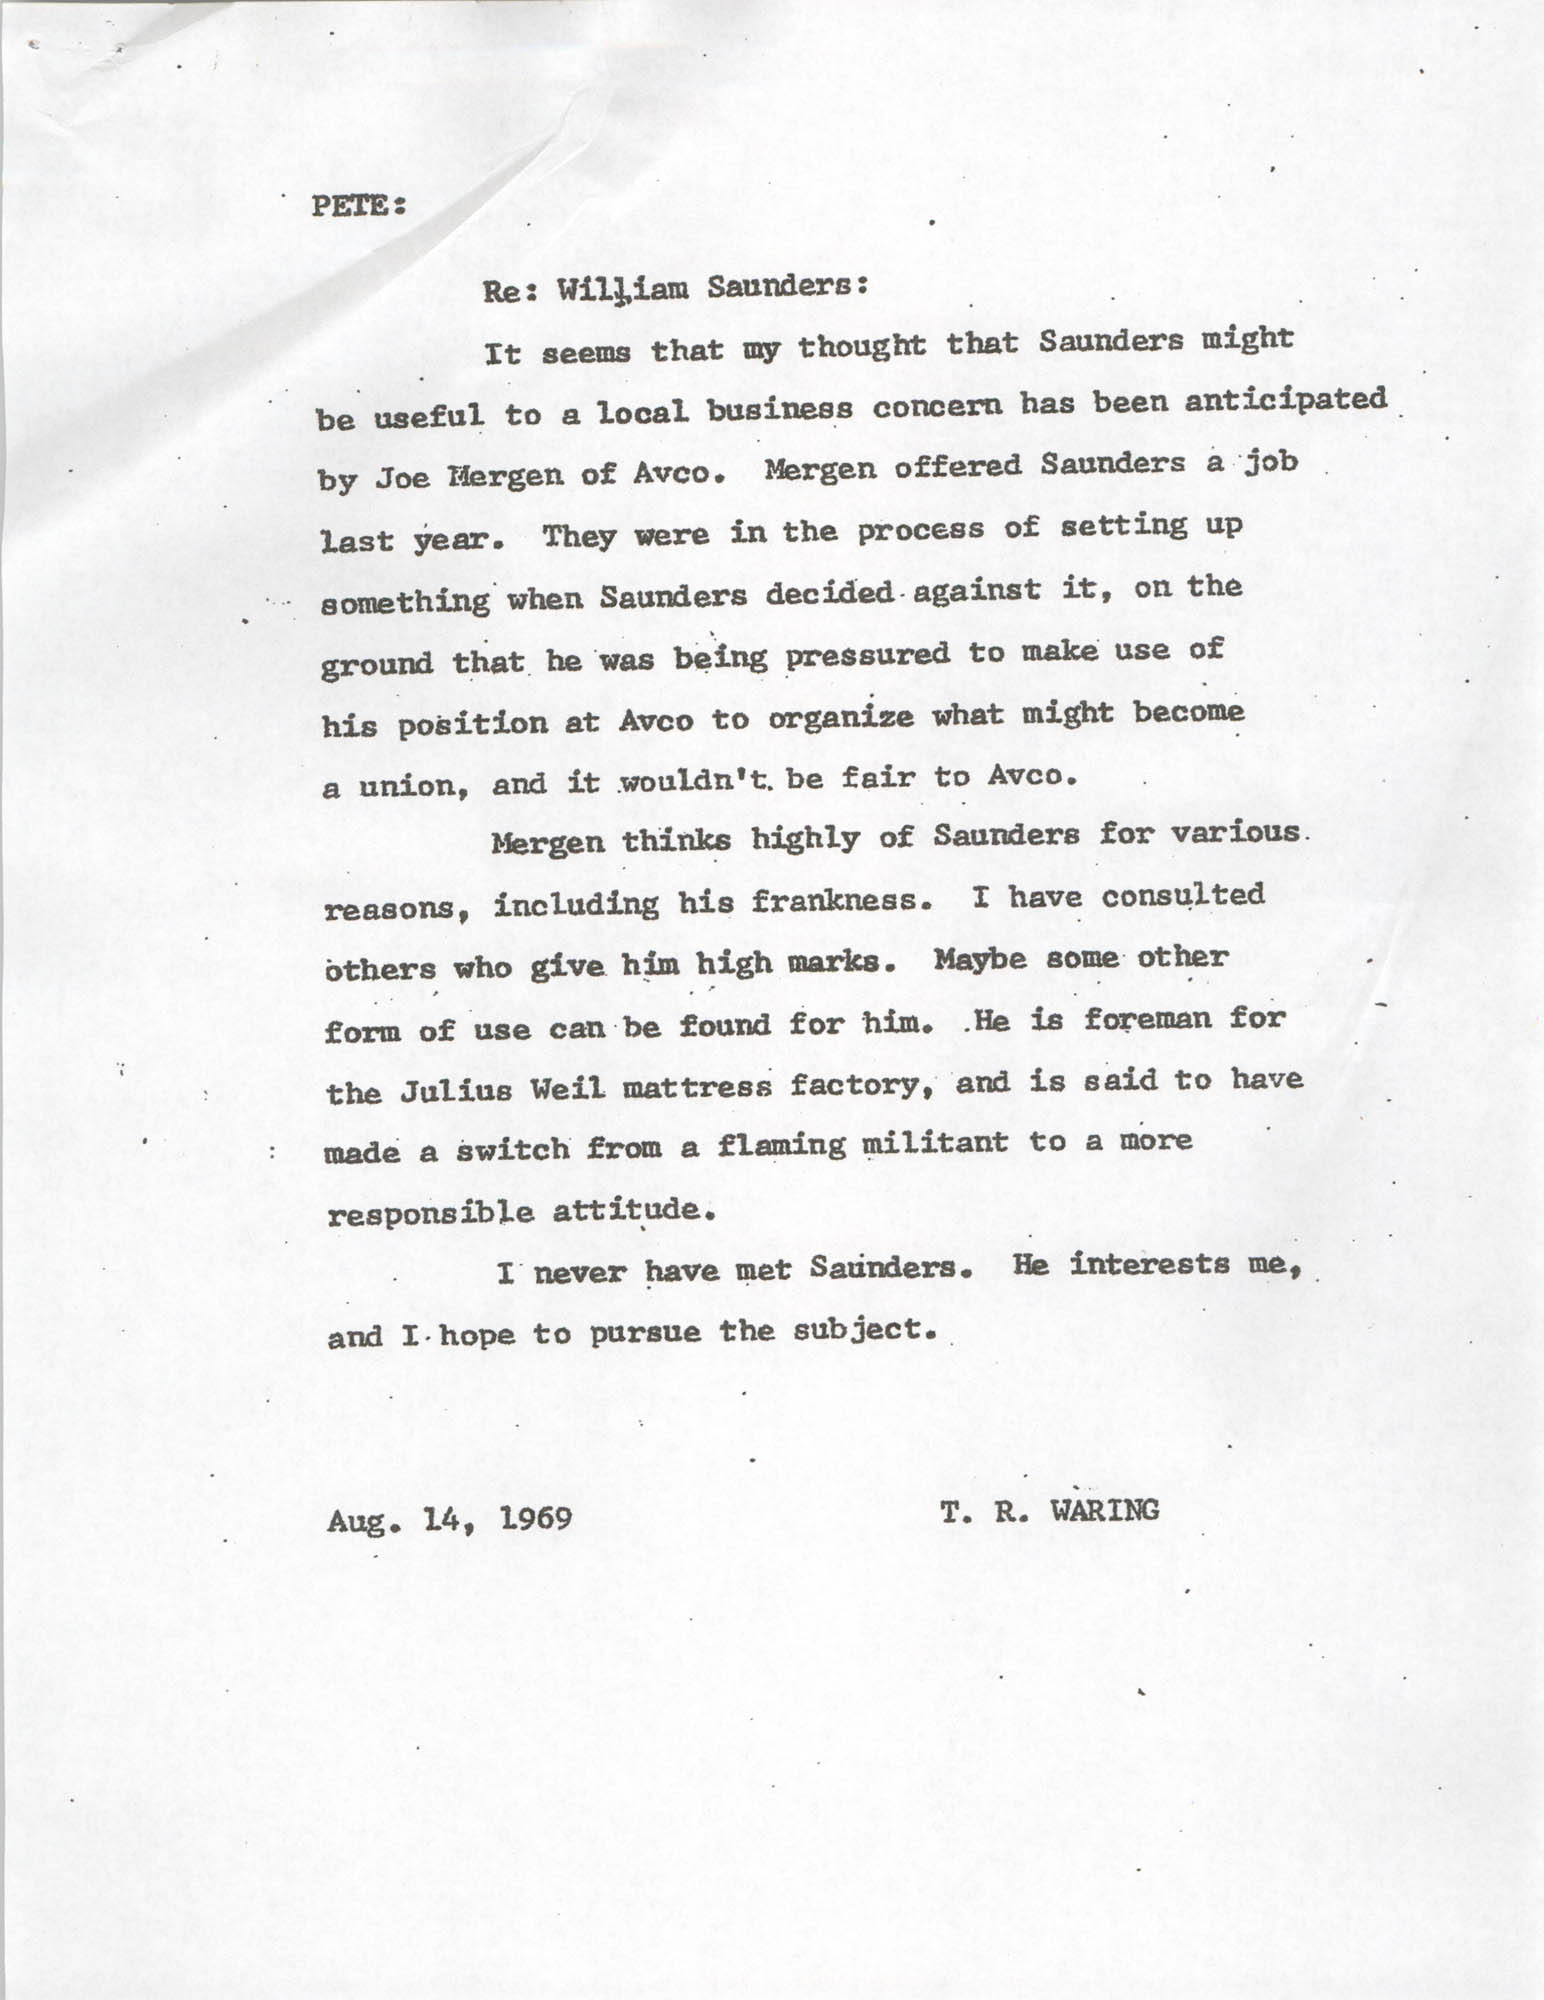 Letter from T. R. Waring to